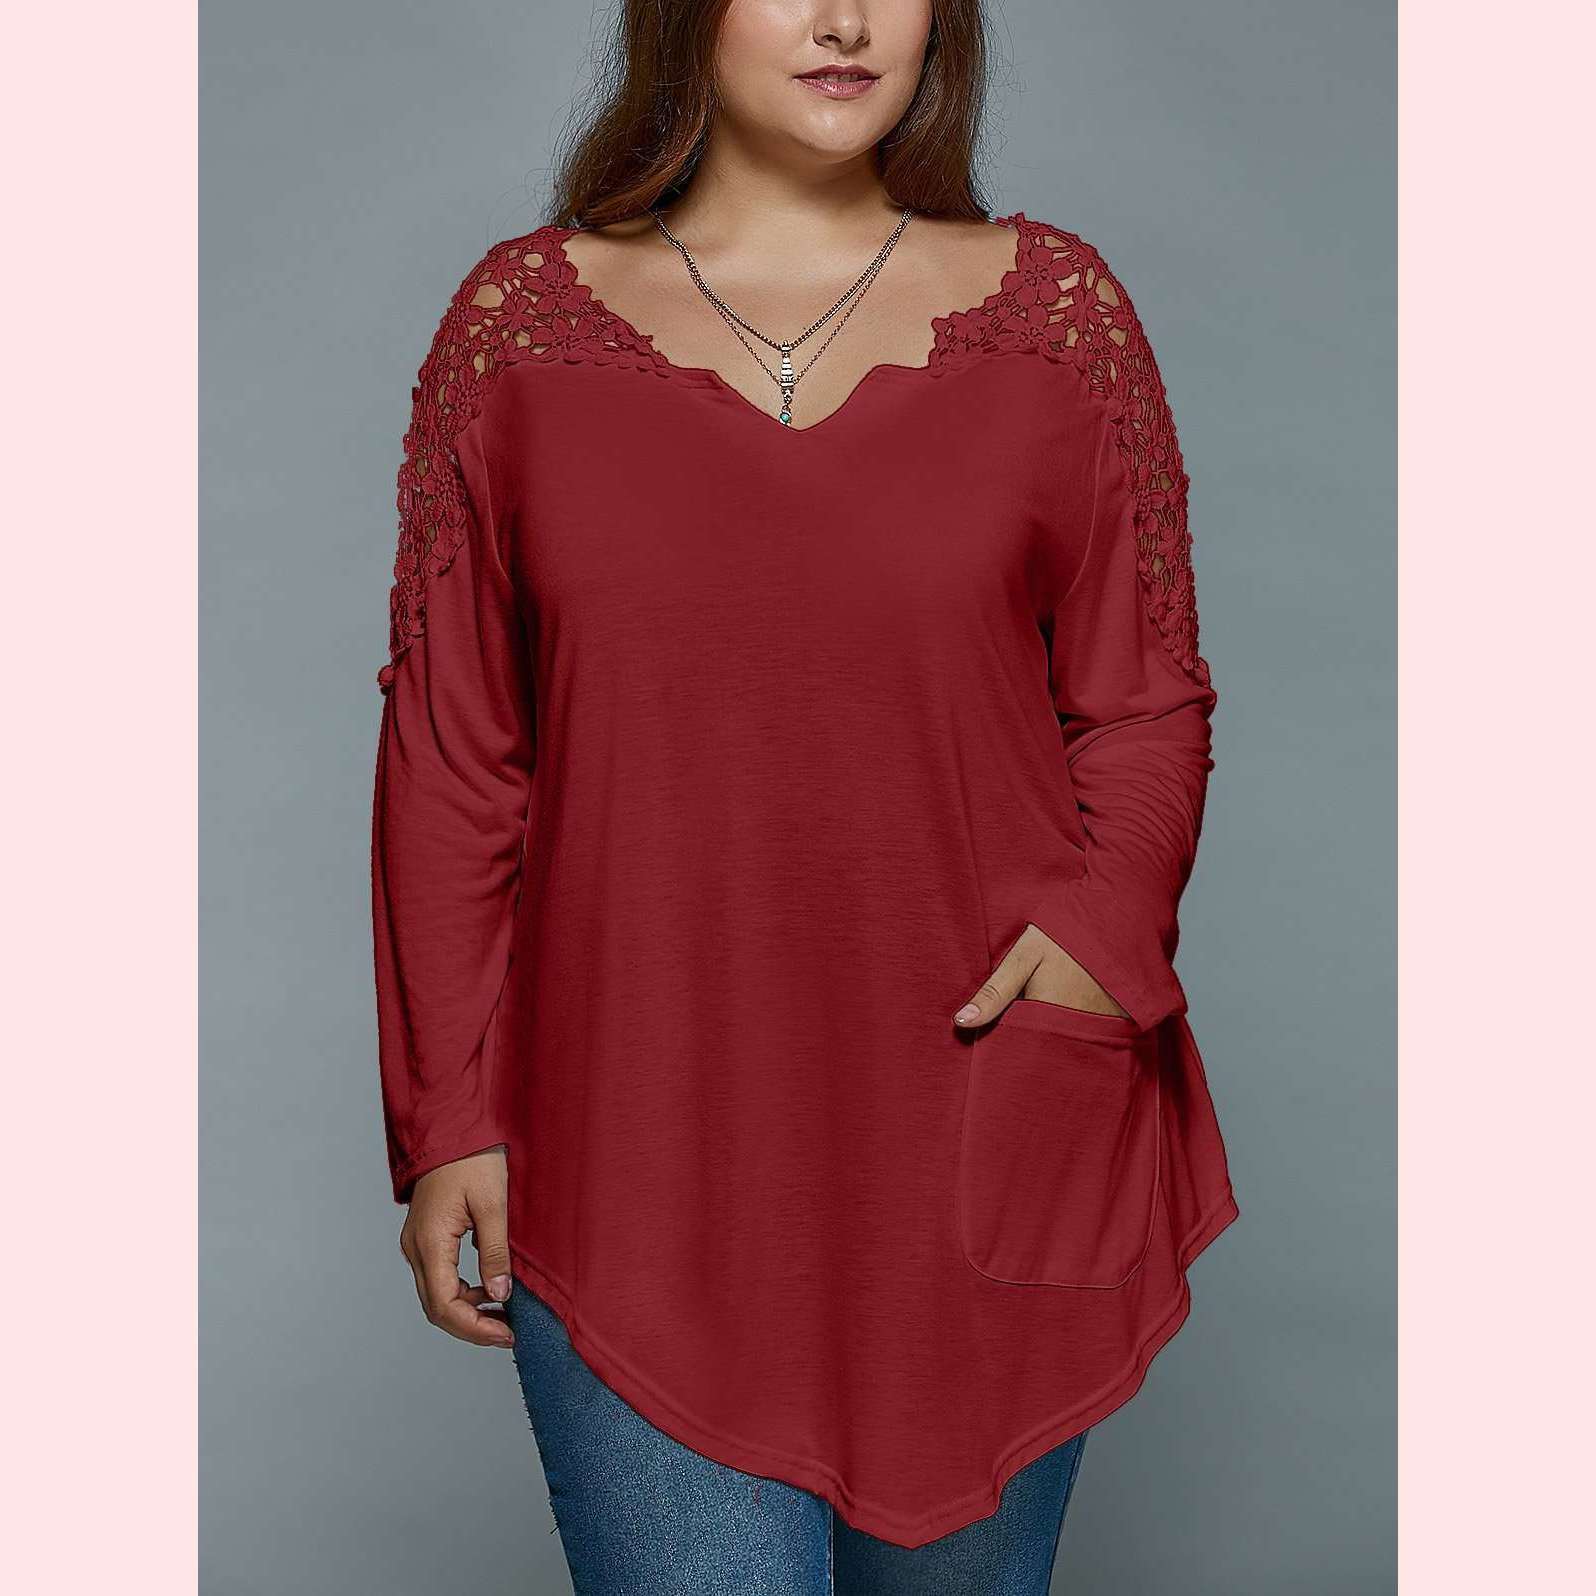 Sweet Daisy Top,Blissful Chic,Wine Red / XL